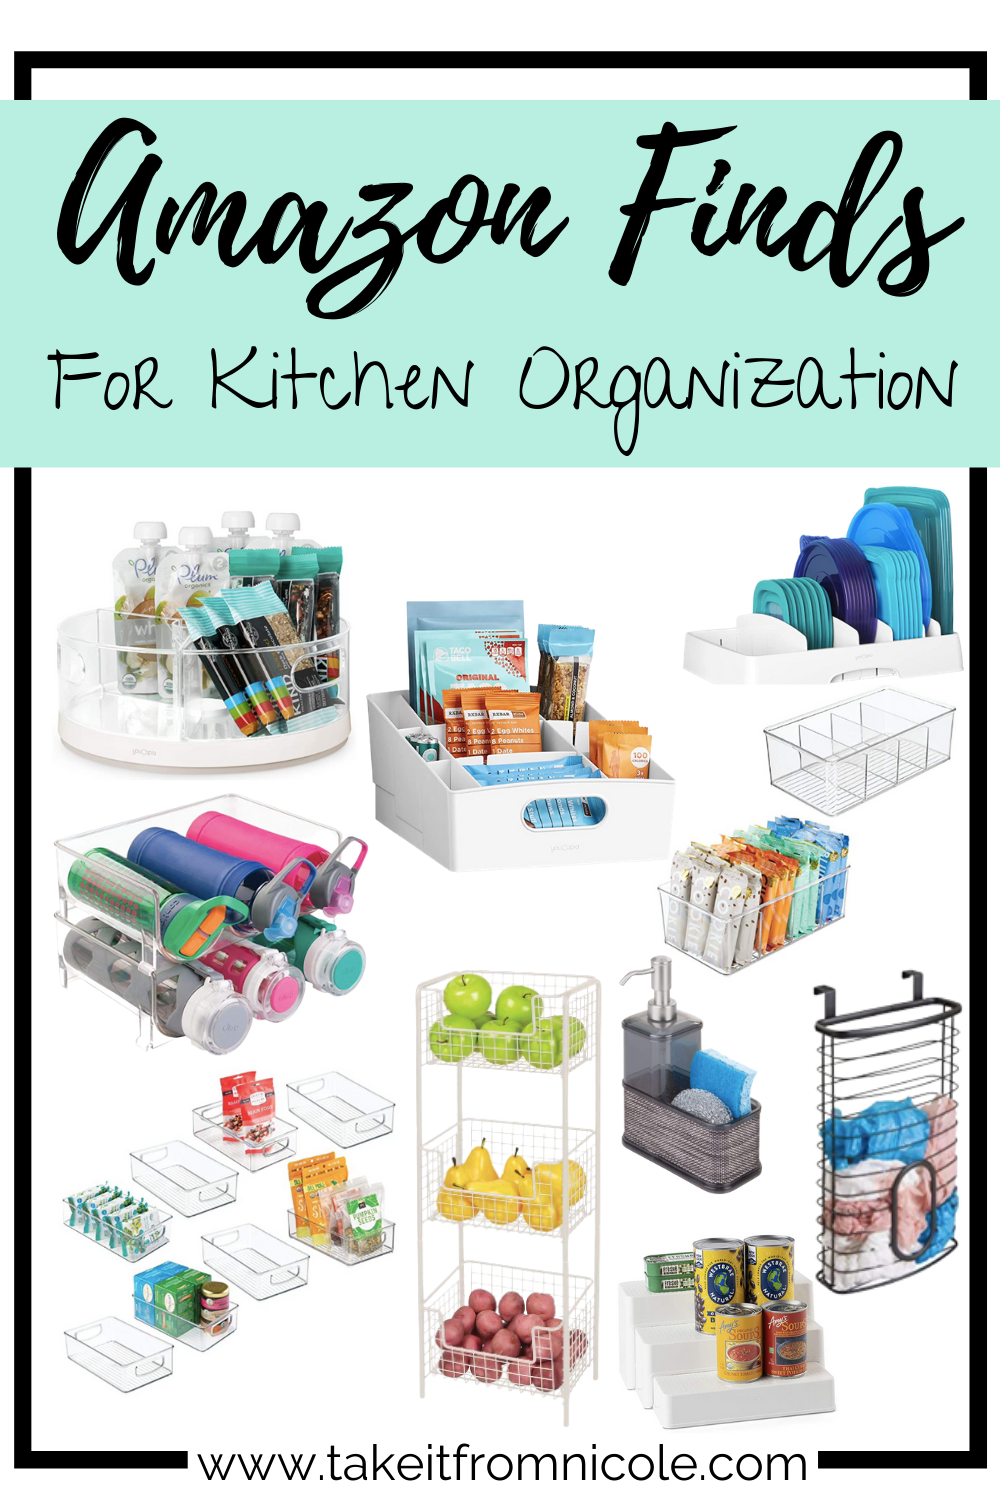 10 Amazon finds to help organize your kitchen and kick chaos to the curb. Organize your pantry, cabinets, counters and refrigerator quickly and easily.